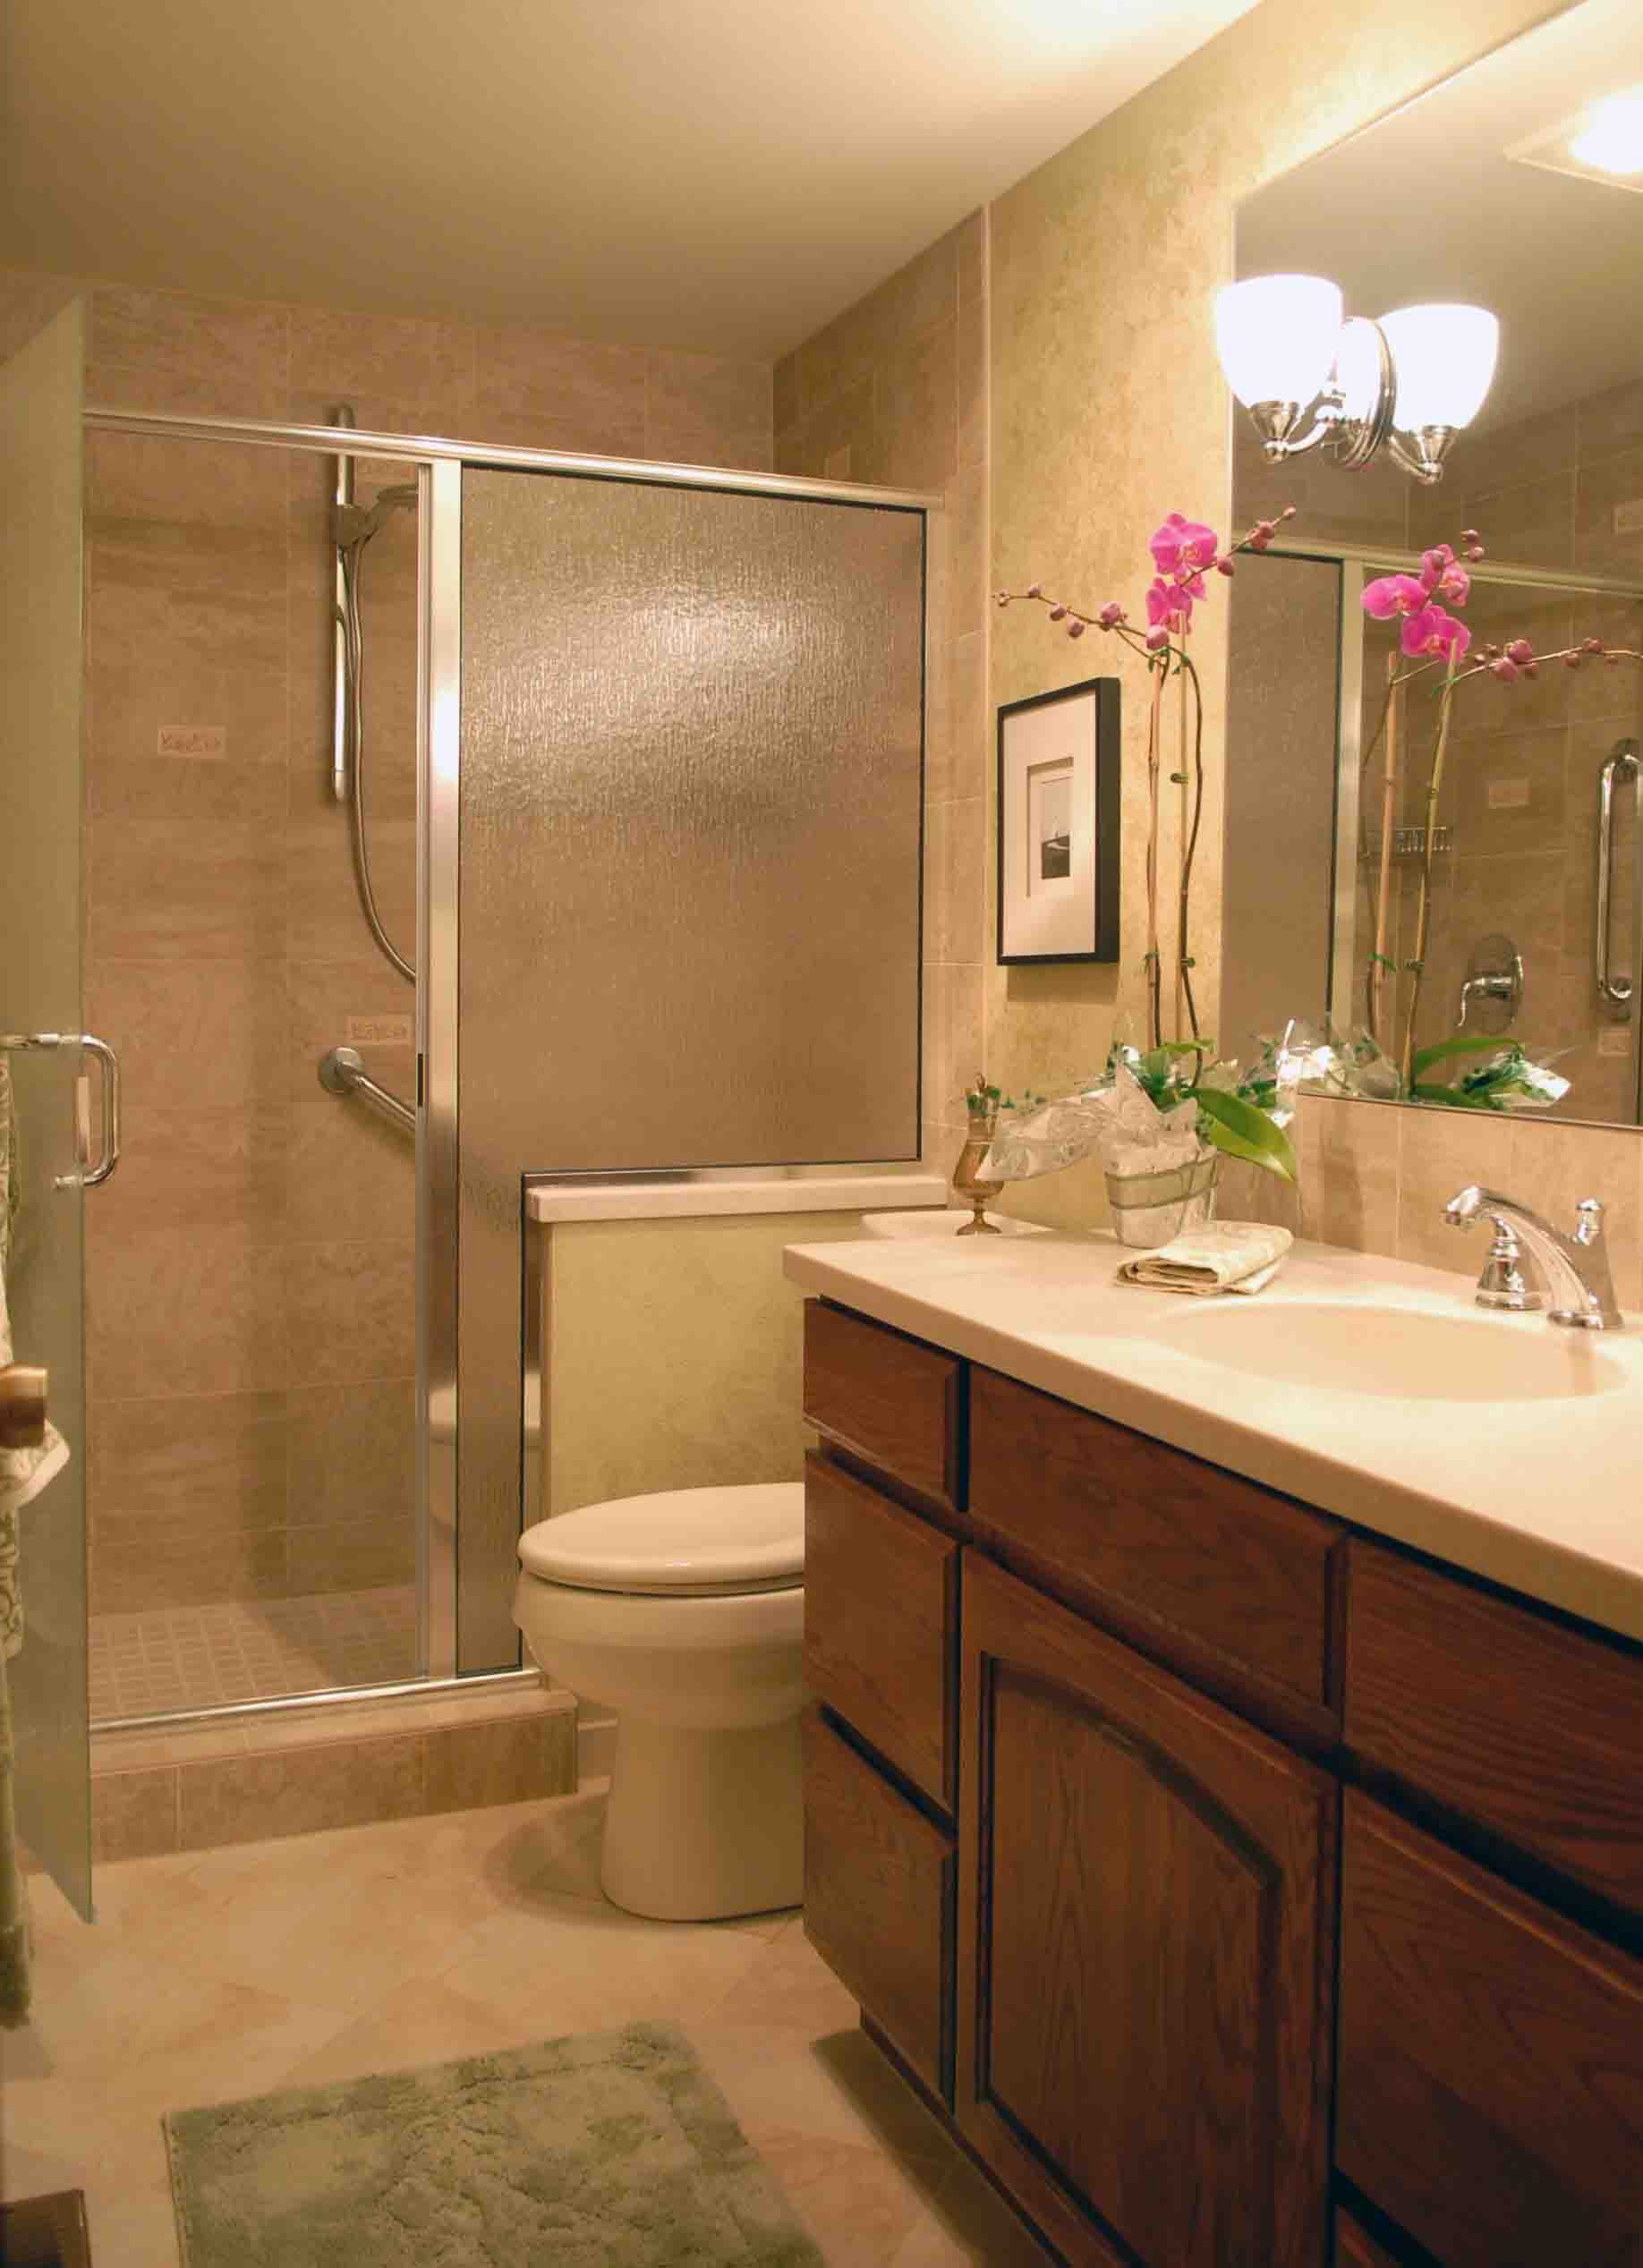 Good-Looking Bathroom Ideas For Small Spaces Design Ideas ... on Bathroom Ideas Small Spaces  id=25288